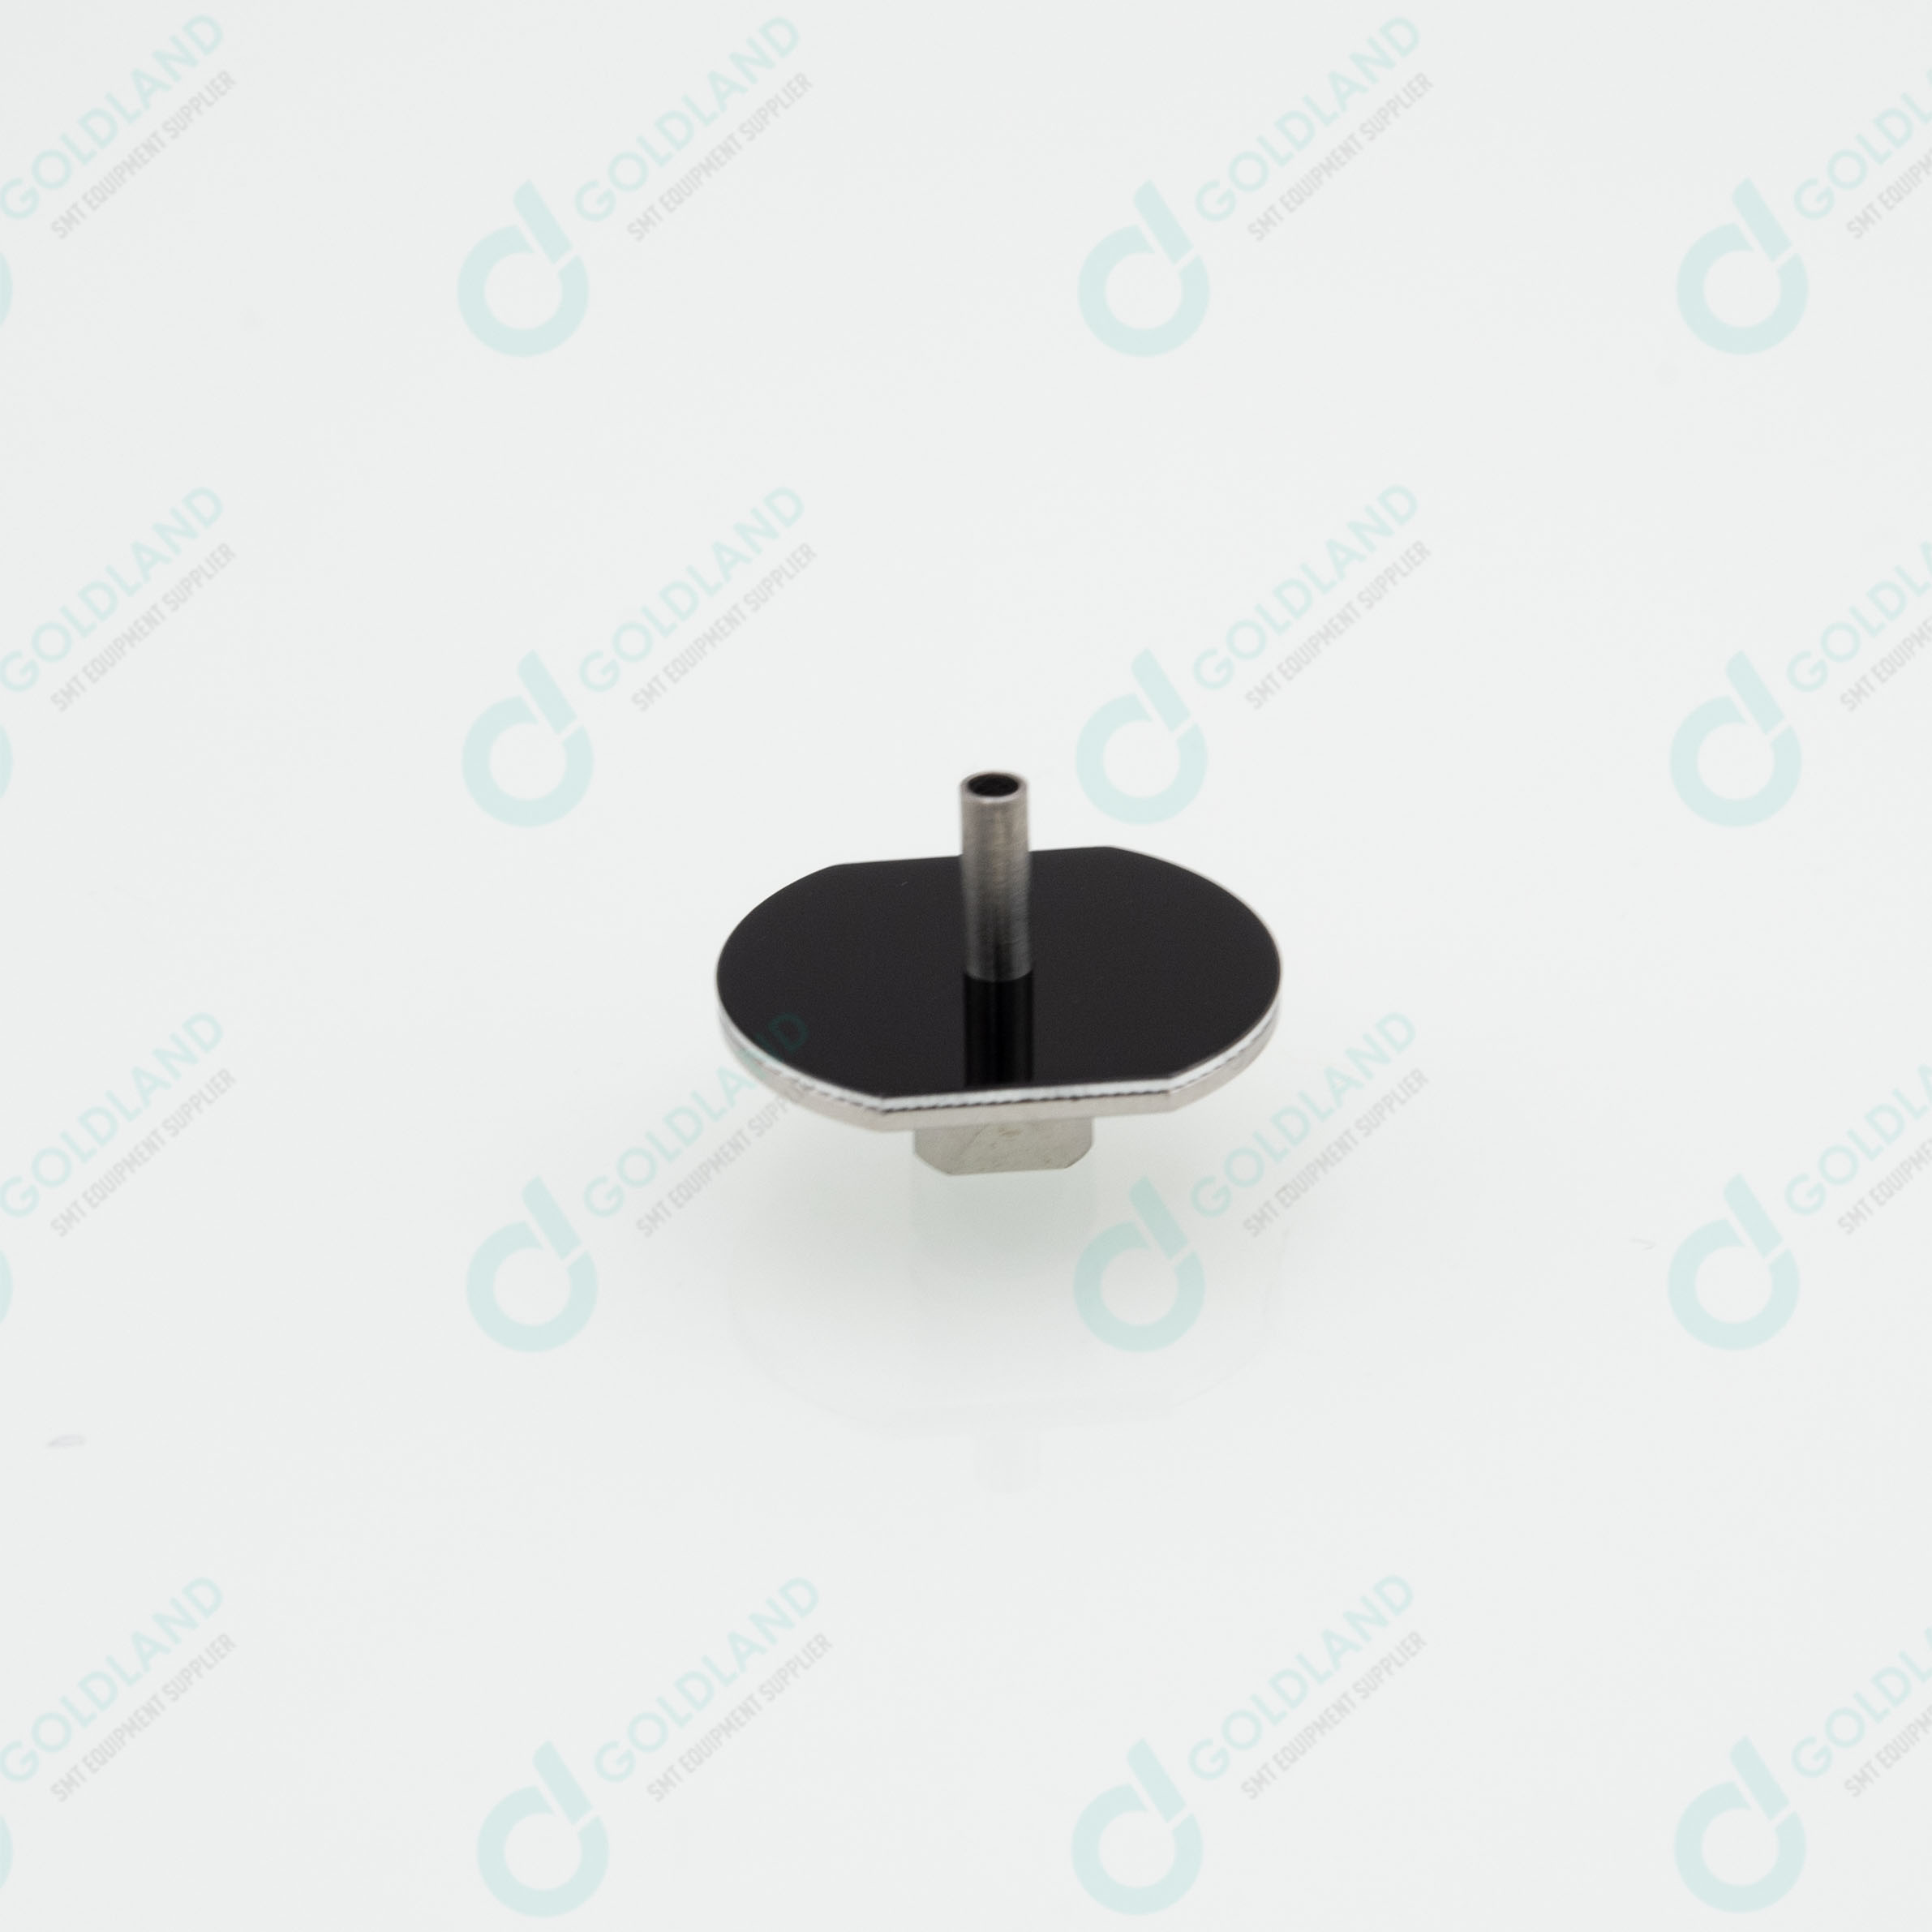 KXFX0385A00 Panasonic 130 Nozzle for Panasonic smt machine parts